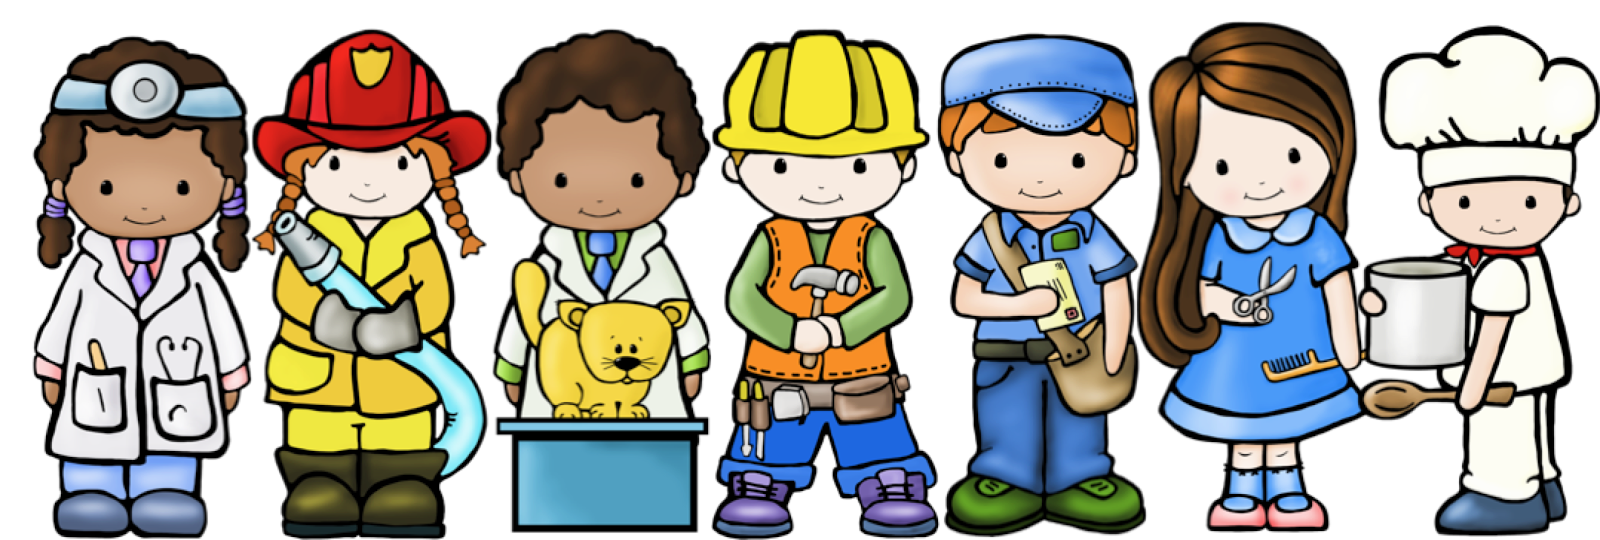 clipart info - Community Workers